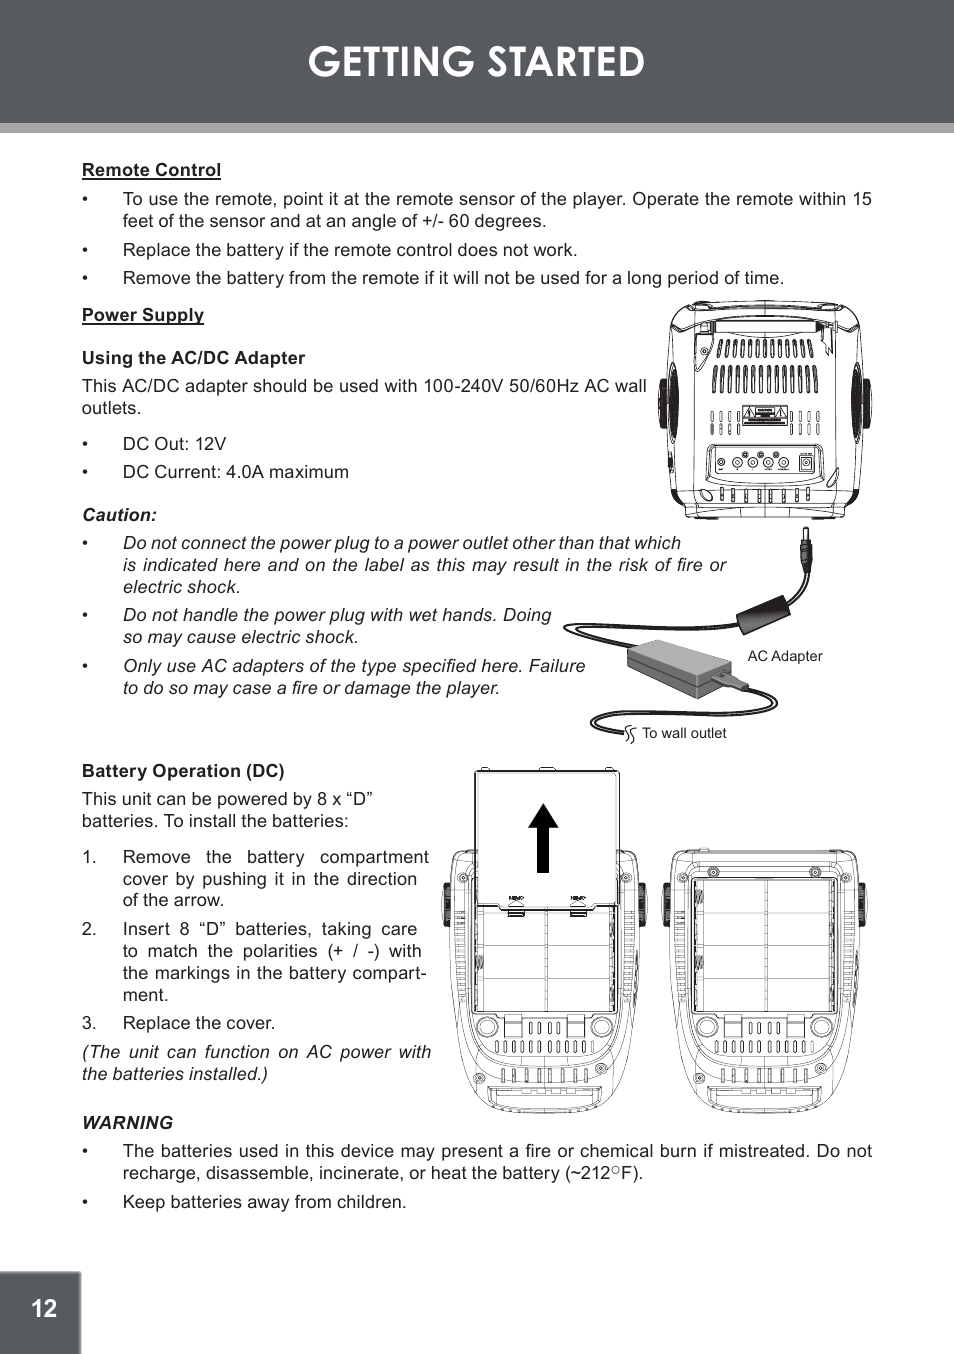 getting started, remote control, power supply | coby electronic tv-dvd1260  user manual | page 12 / 28